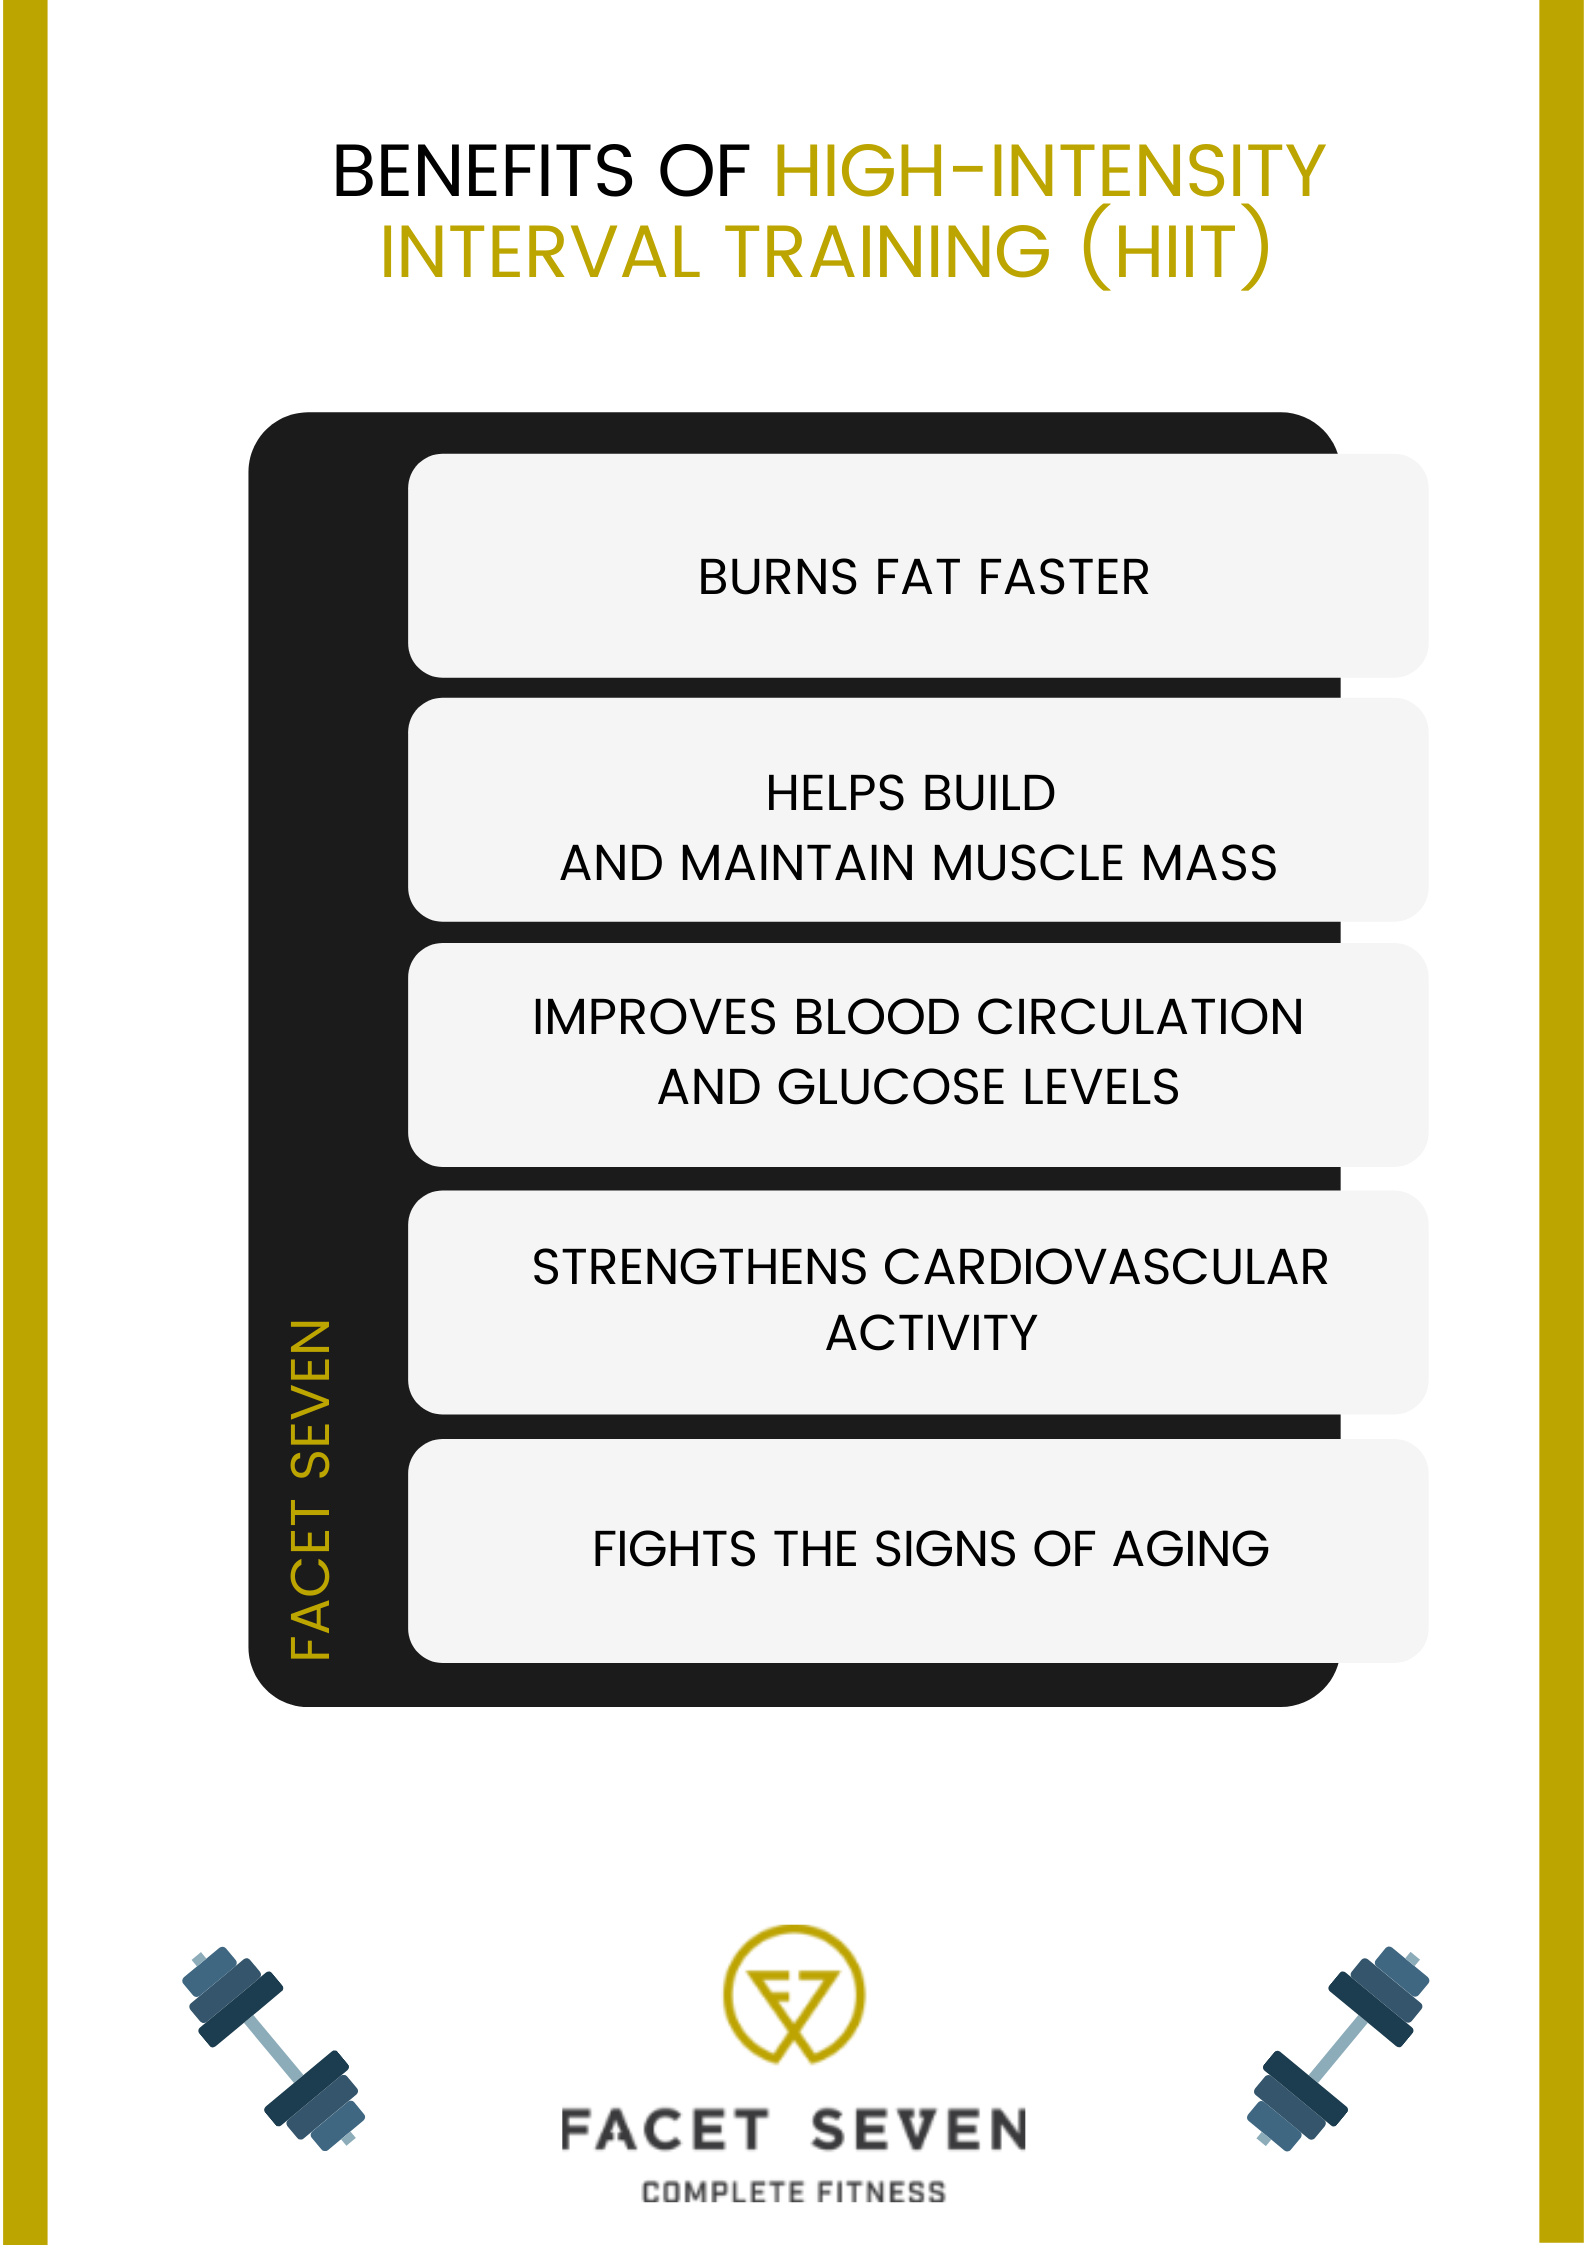 BENEFITS-OF-HIGH-INTENSITY-INTERVAL-TRAINING-HIIT-1-1